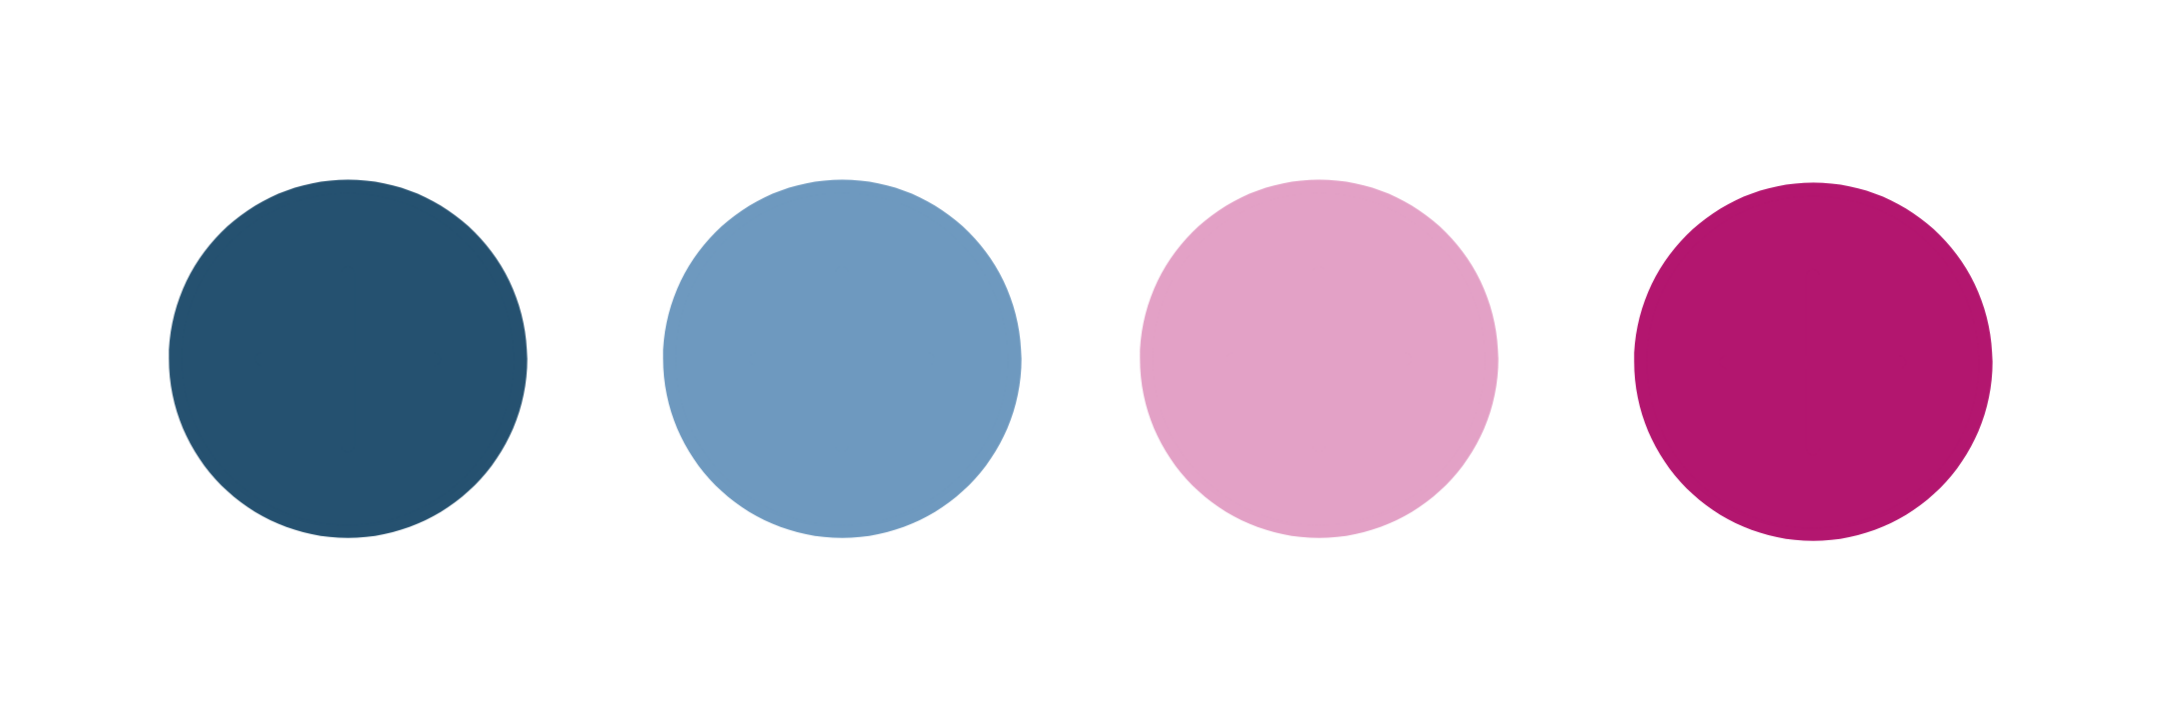 ContentWriters' color palette: shades of blue and pink